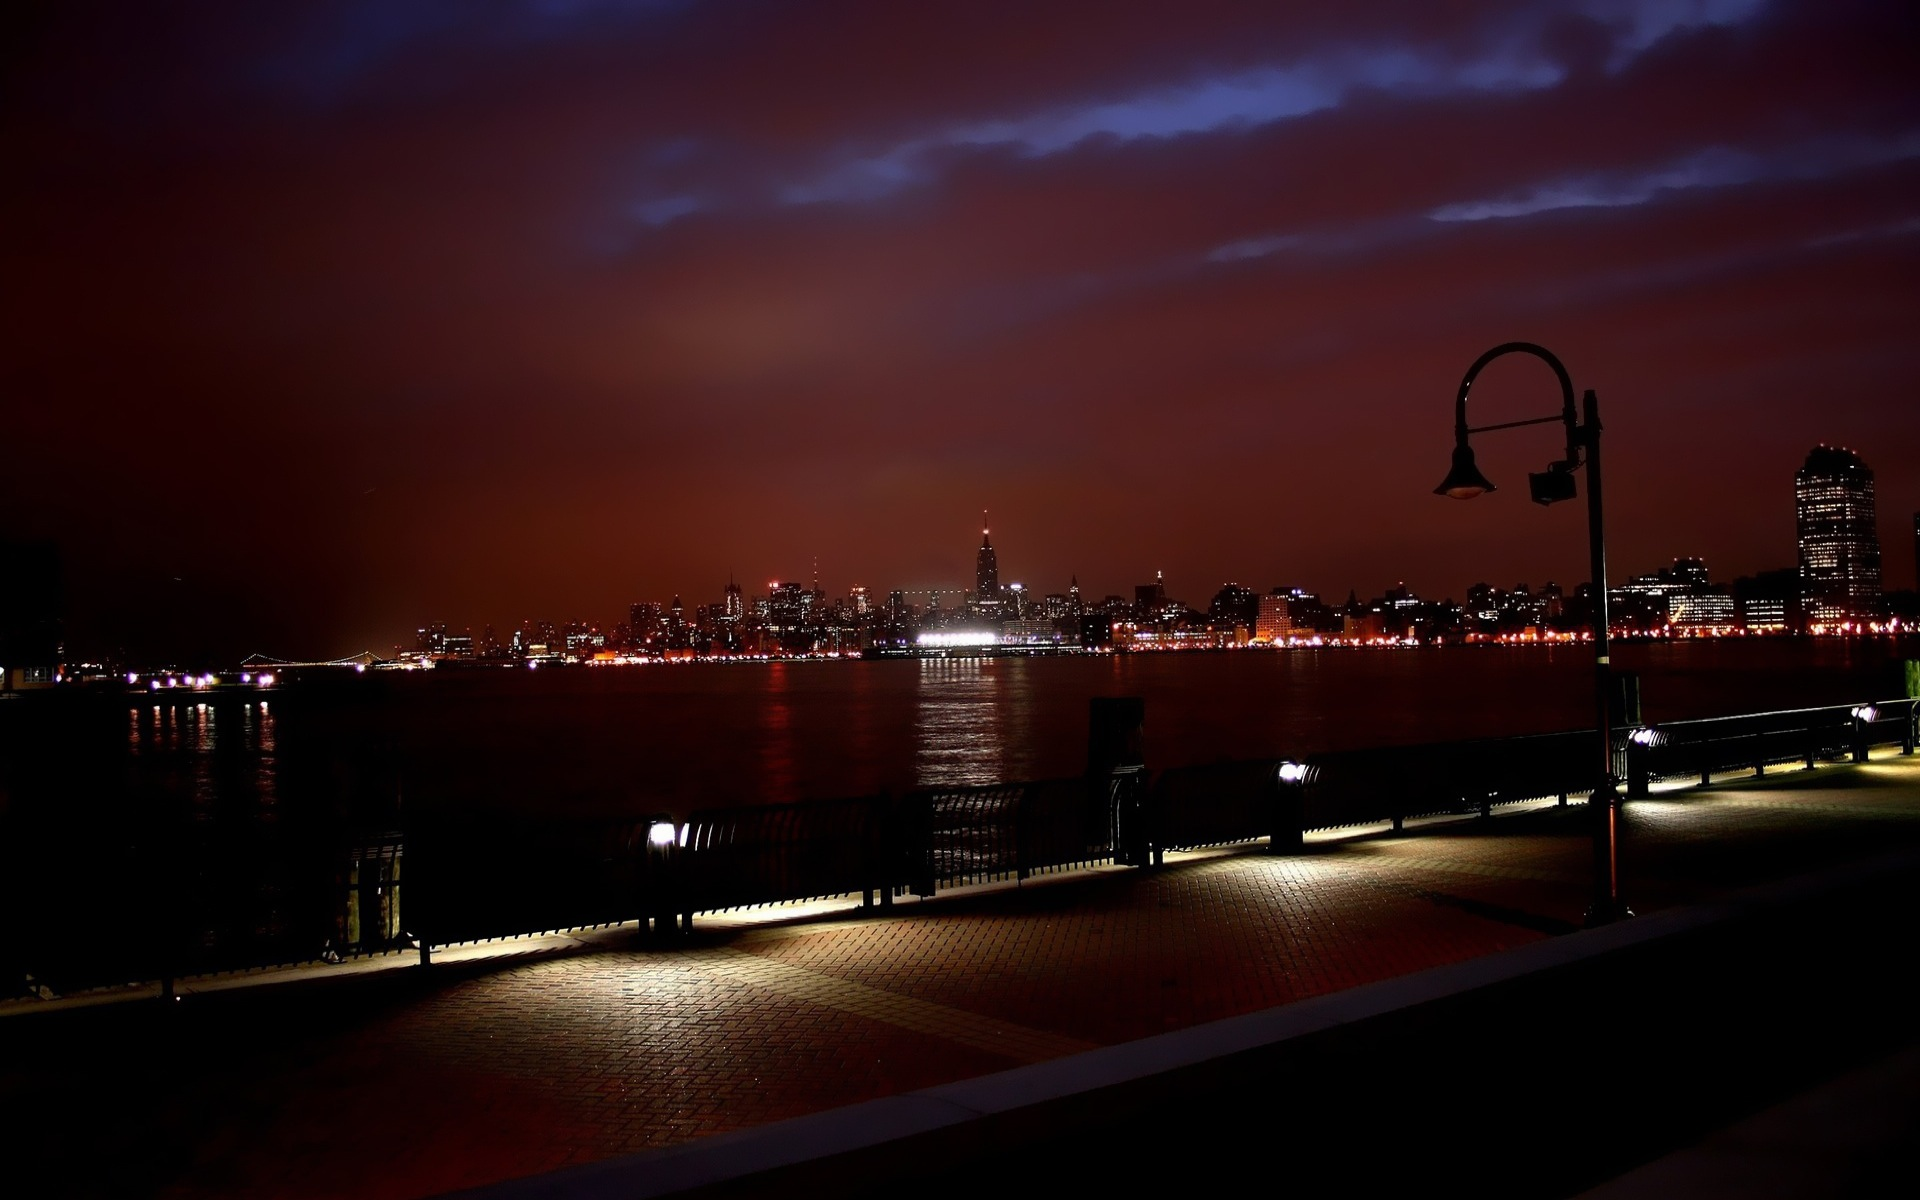 Skyline wallpapers photos and desktop backgrounds up to 8k 7680x4320 resolution - Skyline night wallpaper ...